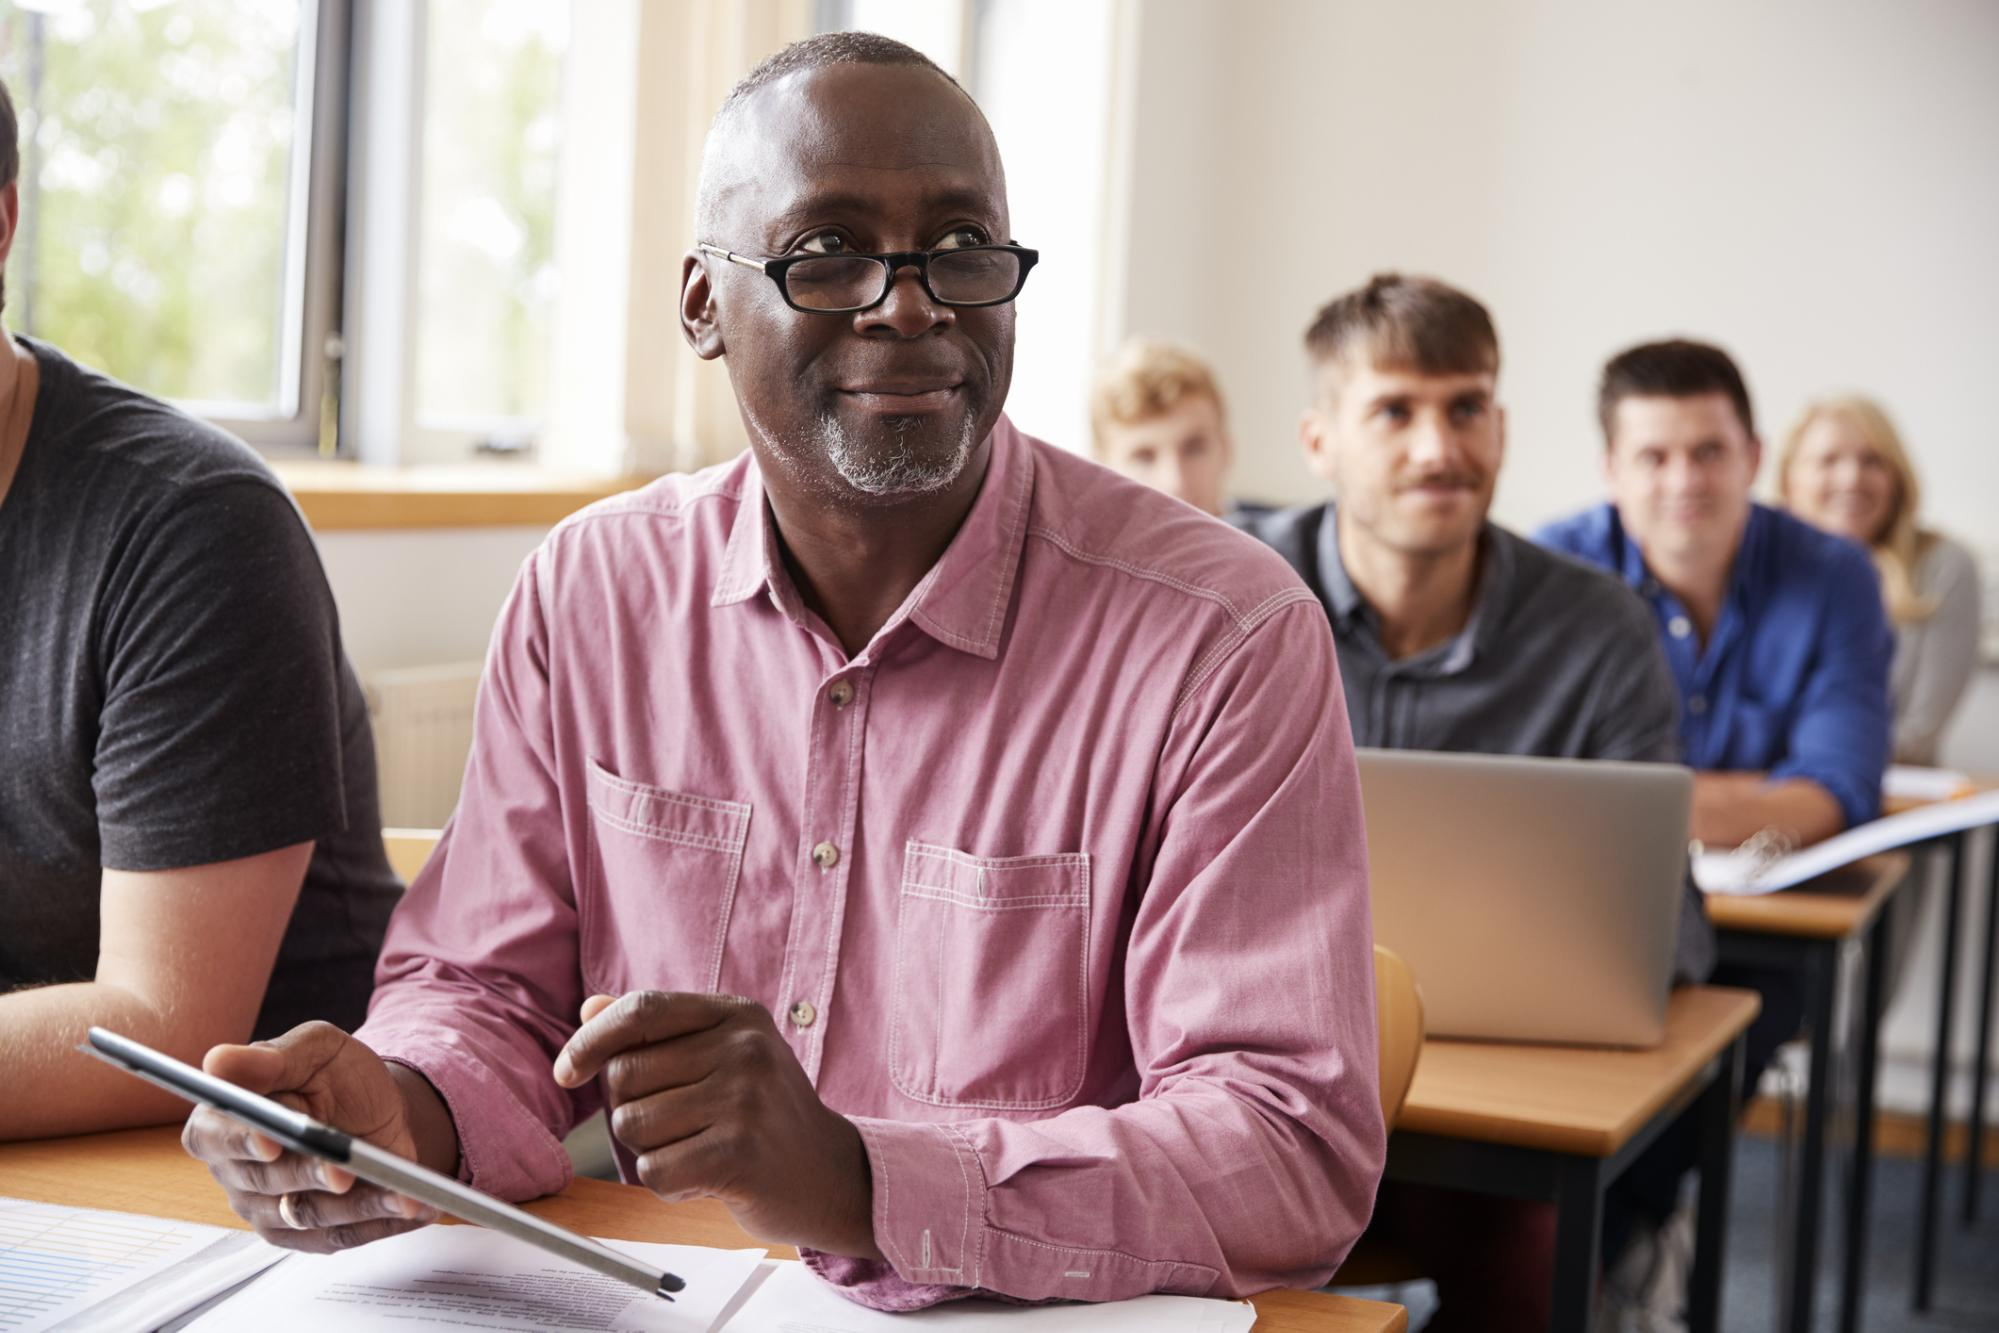 middle-aged man sitting in class room among youthful students